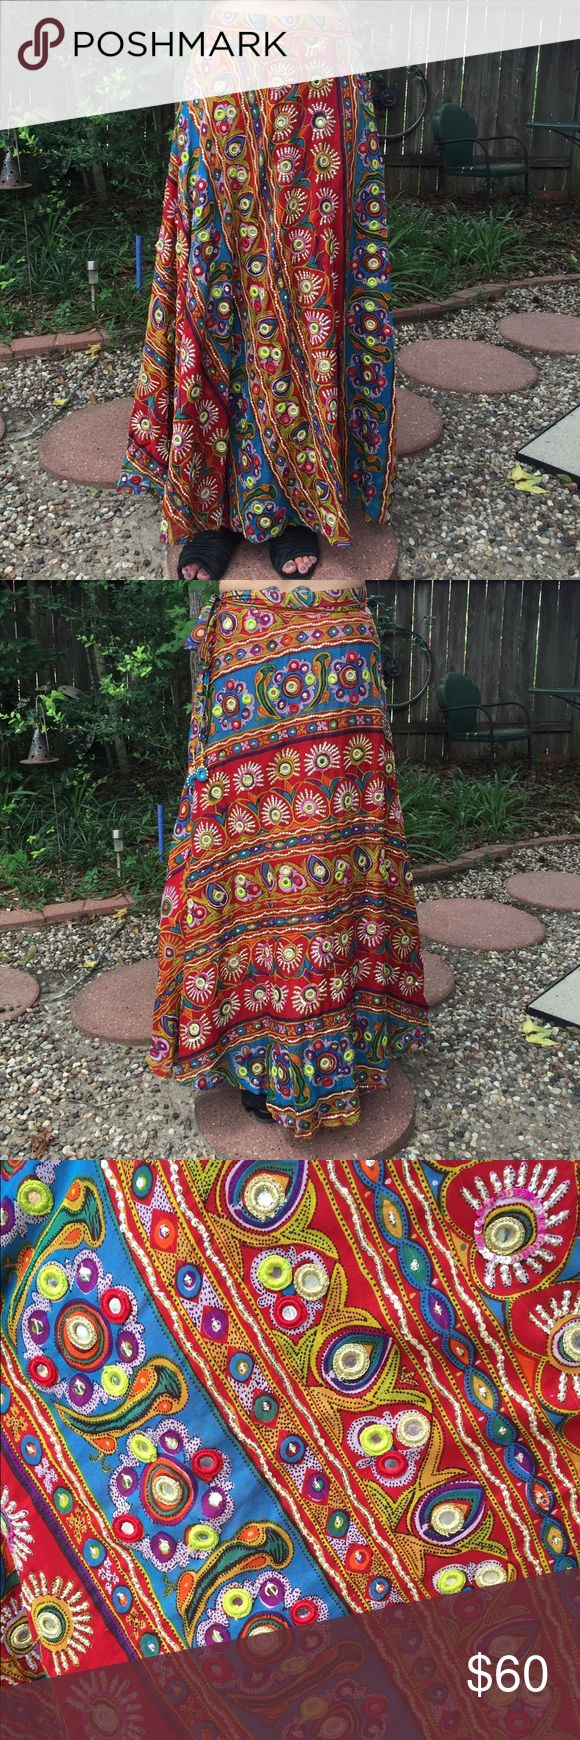 Soft Surroundings Multi-Color Maxi Wrap Skirt Tribal print multi-color cotton maxi wrap skirt with sequins and mirrors from Soft Surroundings. S Soft Surroundings Skirts Maxi